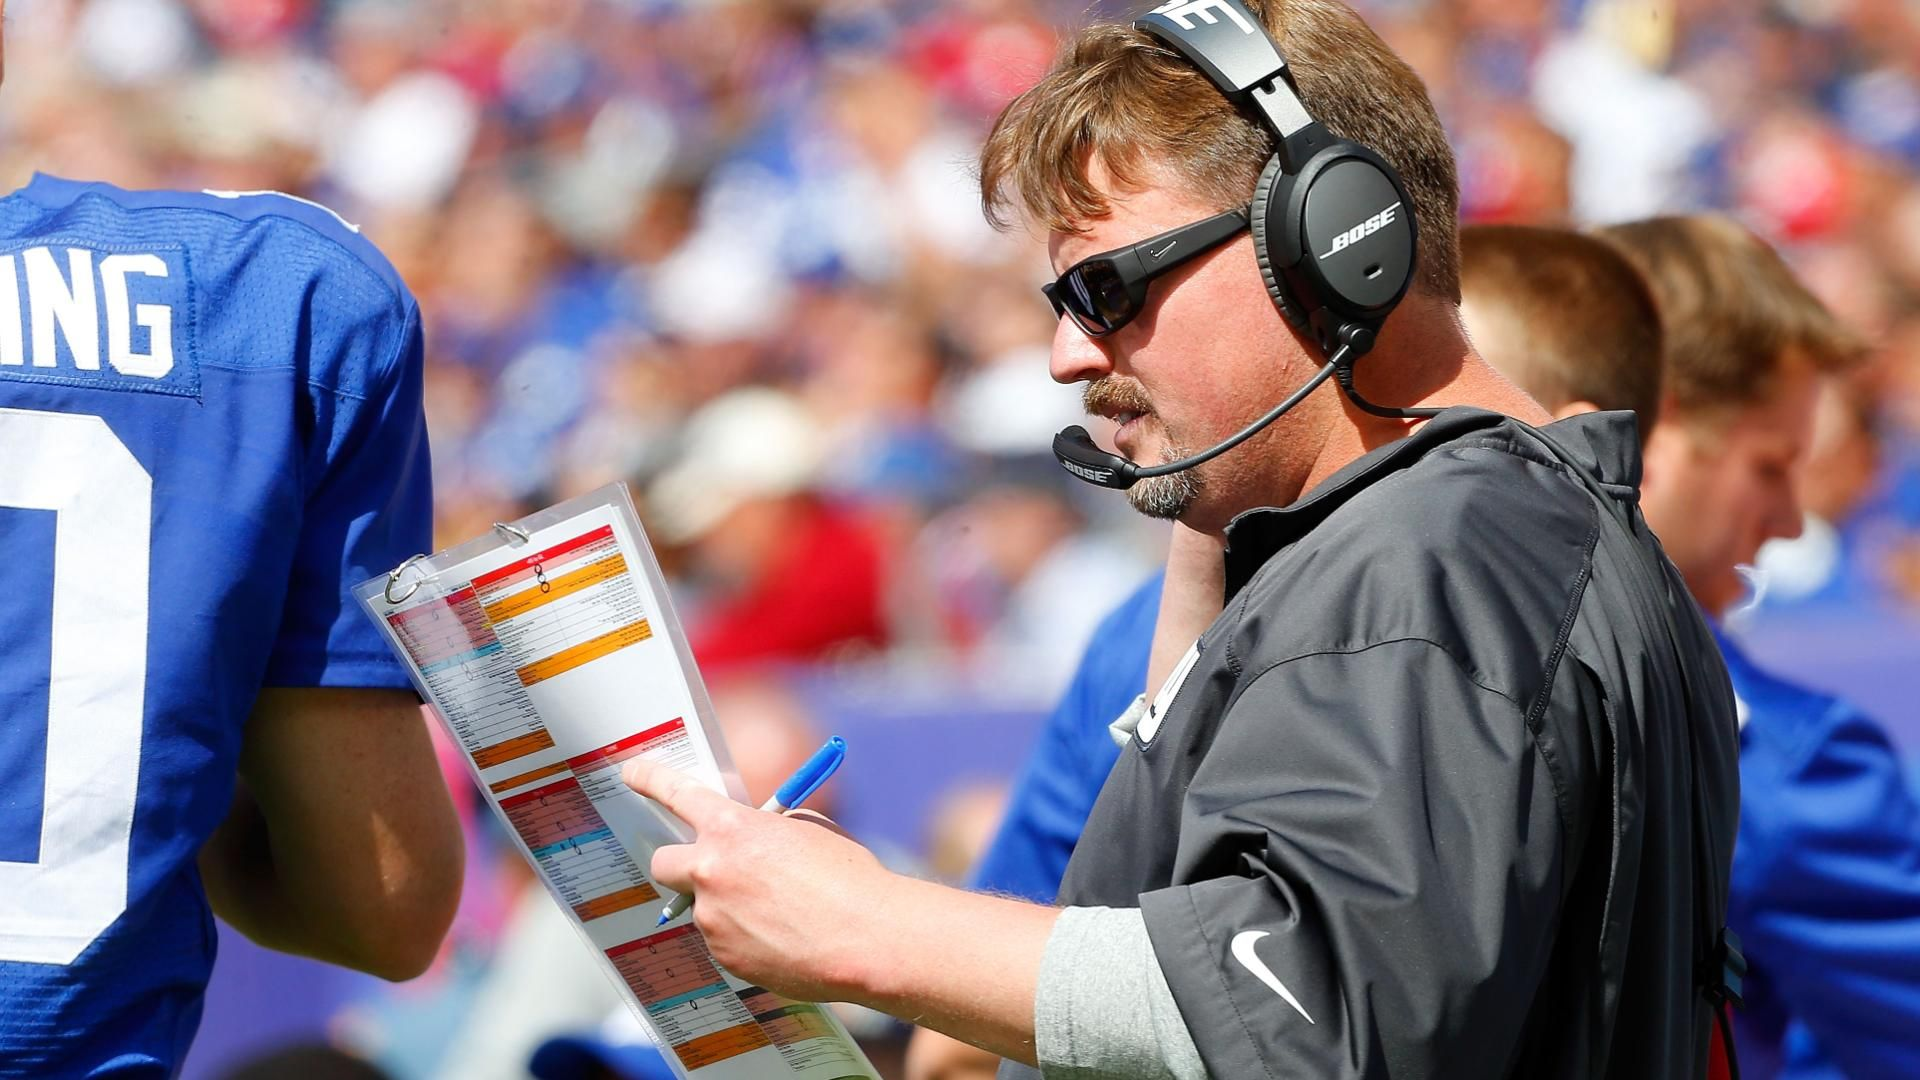 https://secure.espncdn.com/combiner/i?img=/media/motion/2016/0114/dm_160114_nfl_schefter_giants_hire_mcadoo/dm_160114_nfl_schefter_giants_hire_mcadoo.jpg